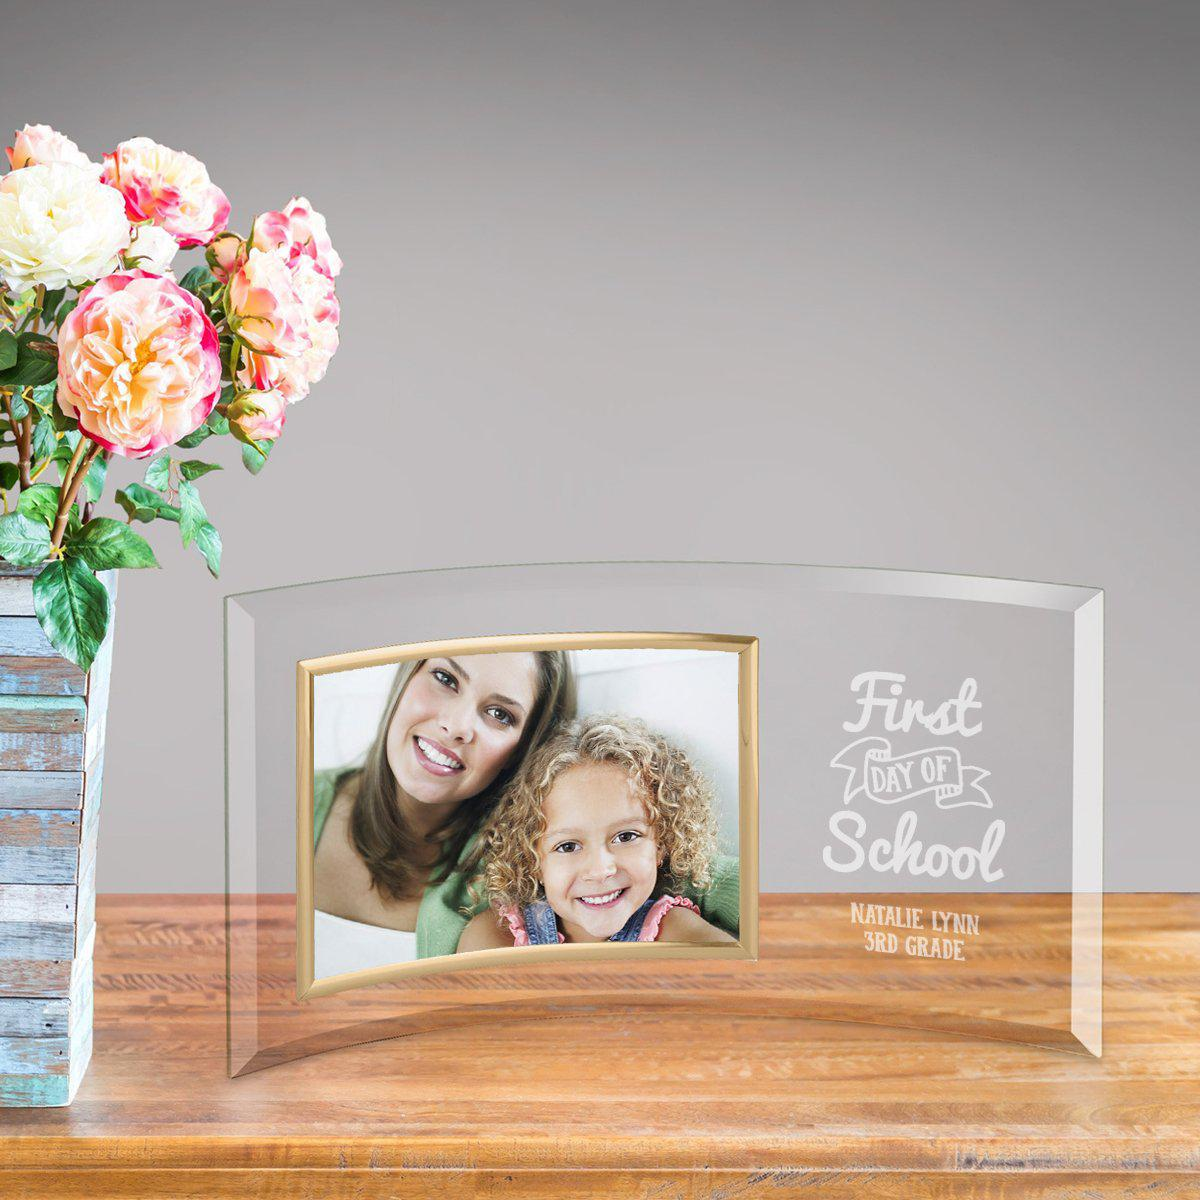 Personalized Glass Picture Frames | Custom Glass Photo Frames